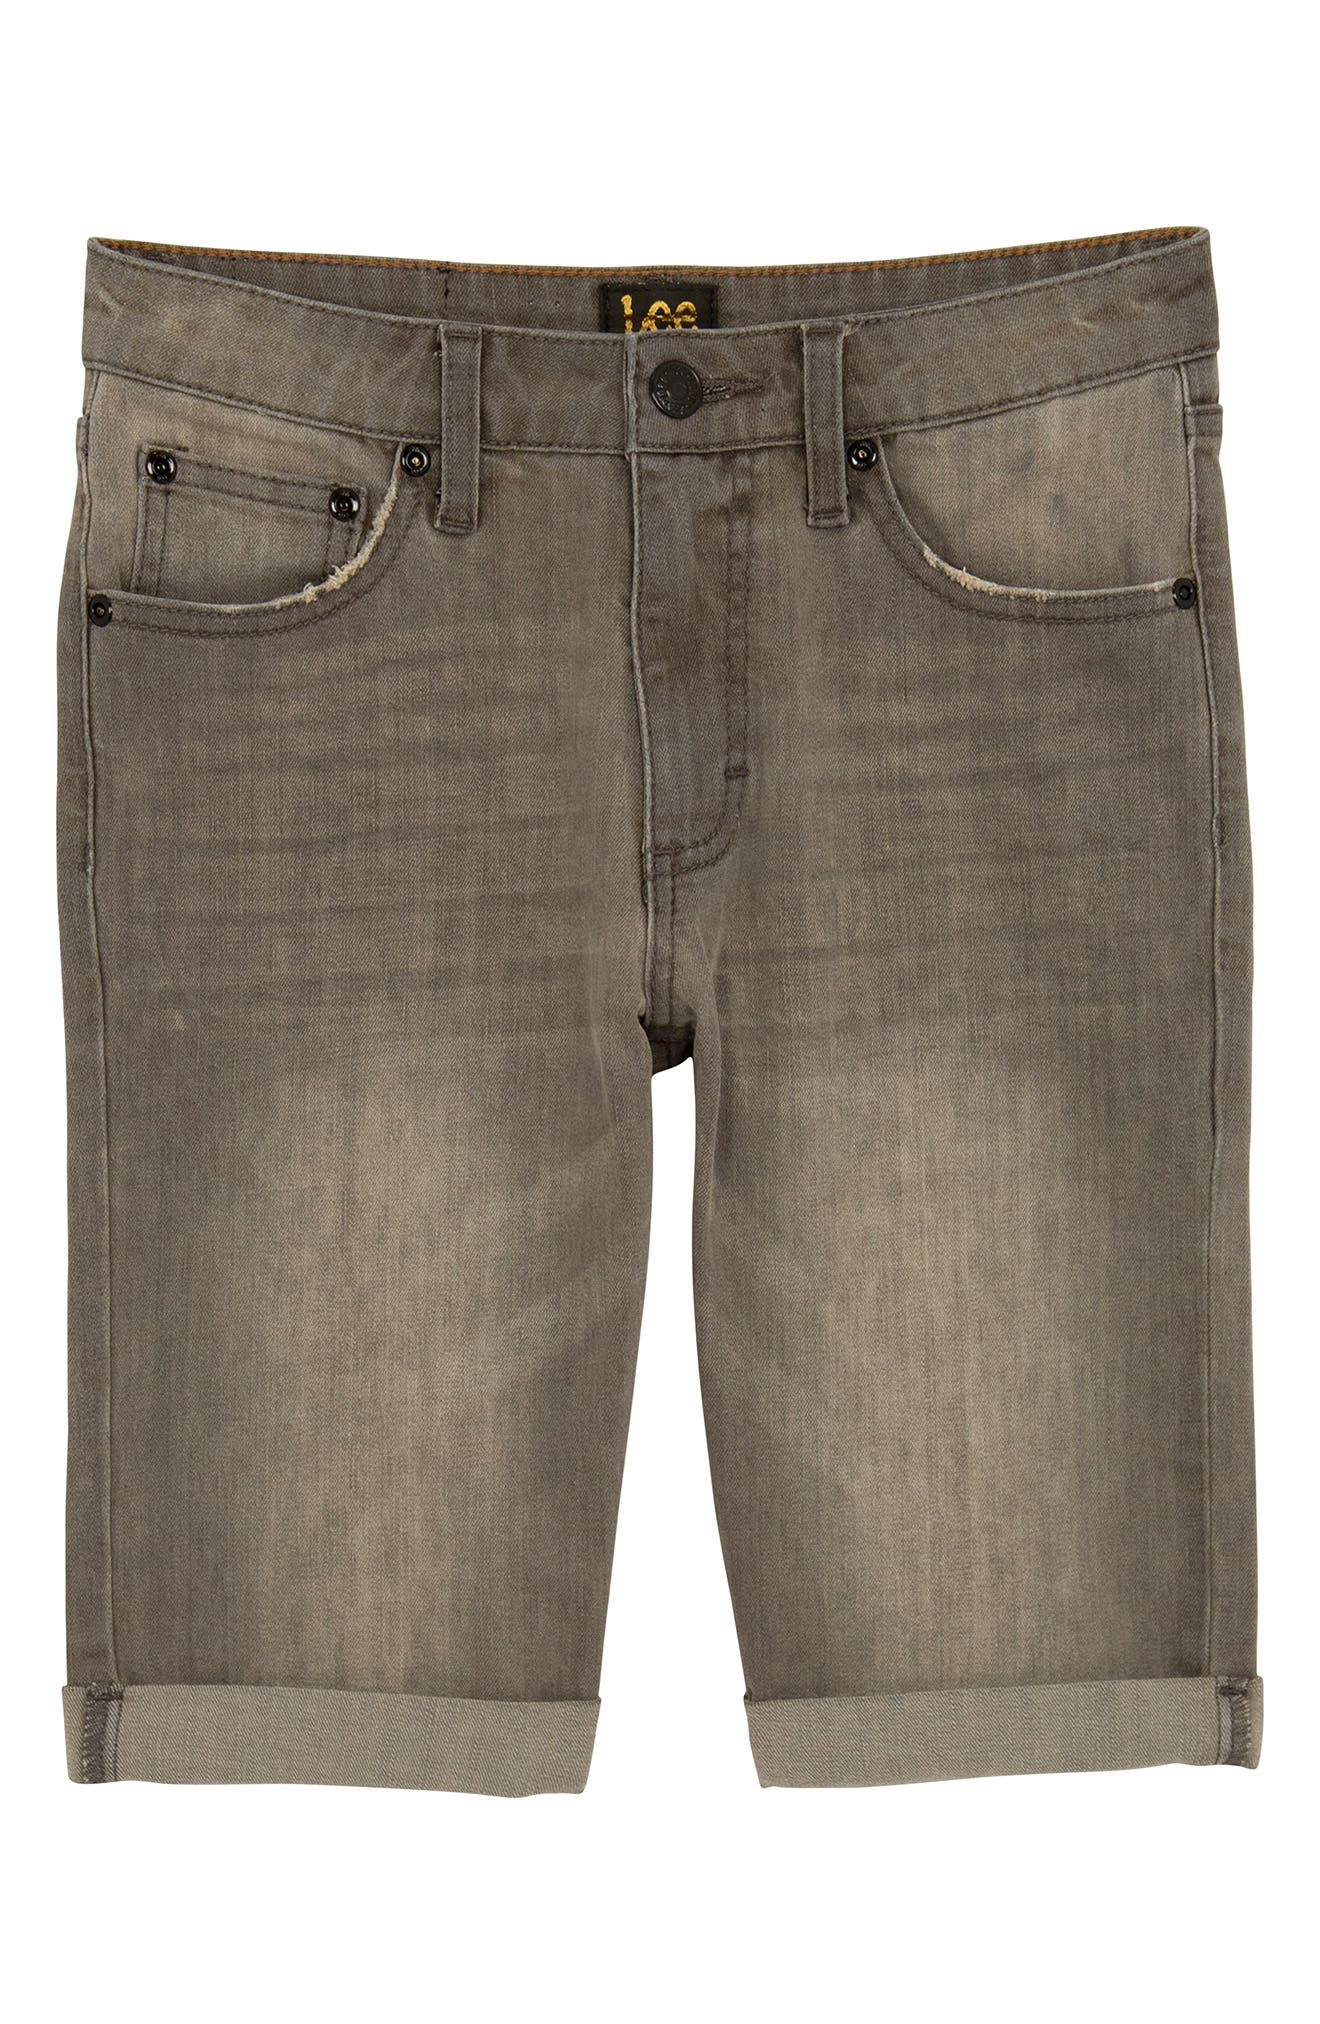 Lee Straight Leg Cuffed Denim Shorts (Big Boys)